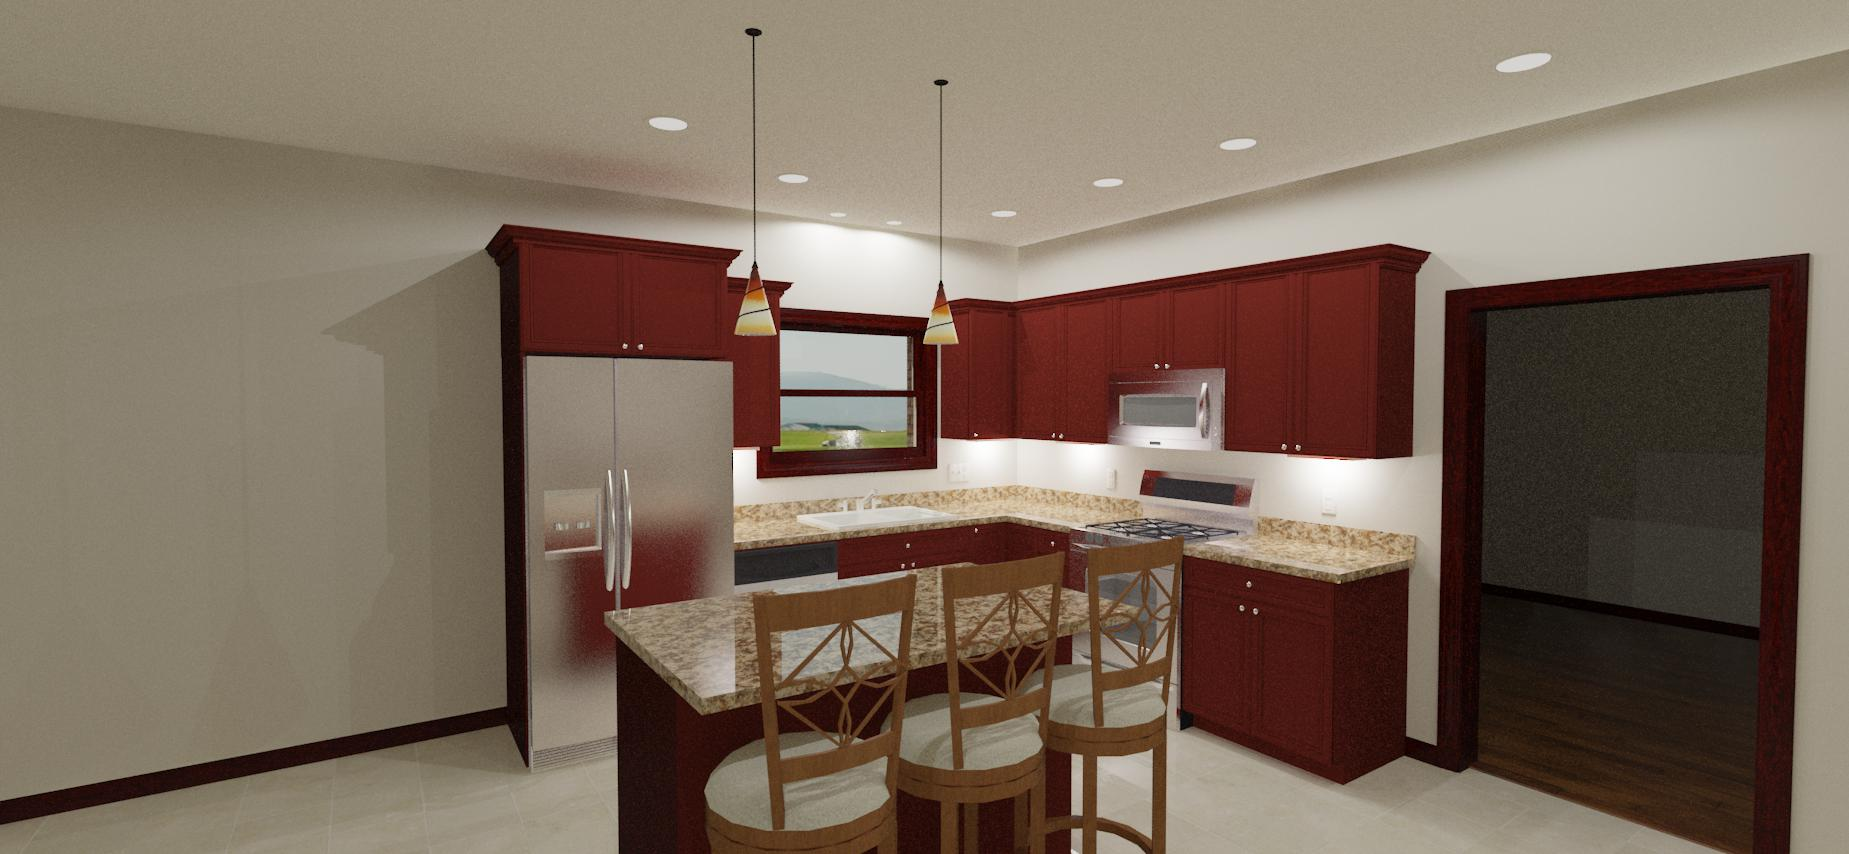 new kitchen recessed lighting layout recessed kitchen lighting New Kitchen Recessed Lighting Layout 1